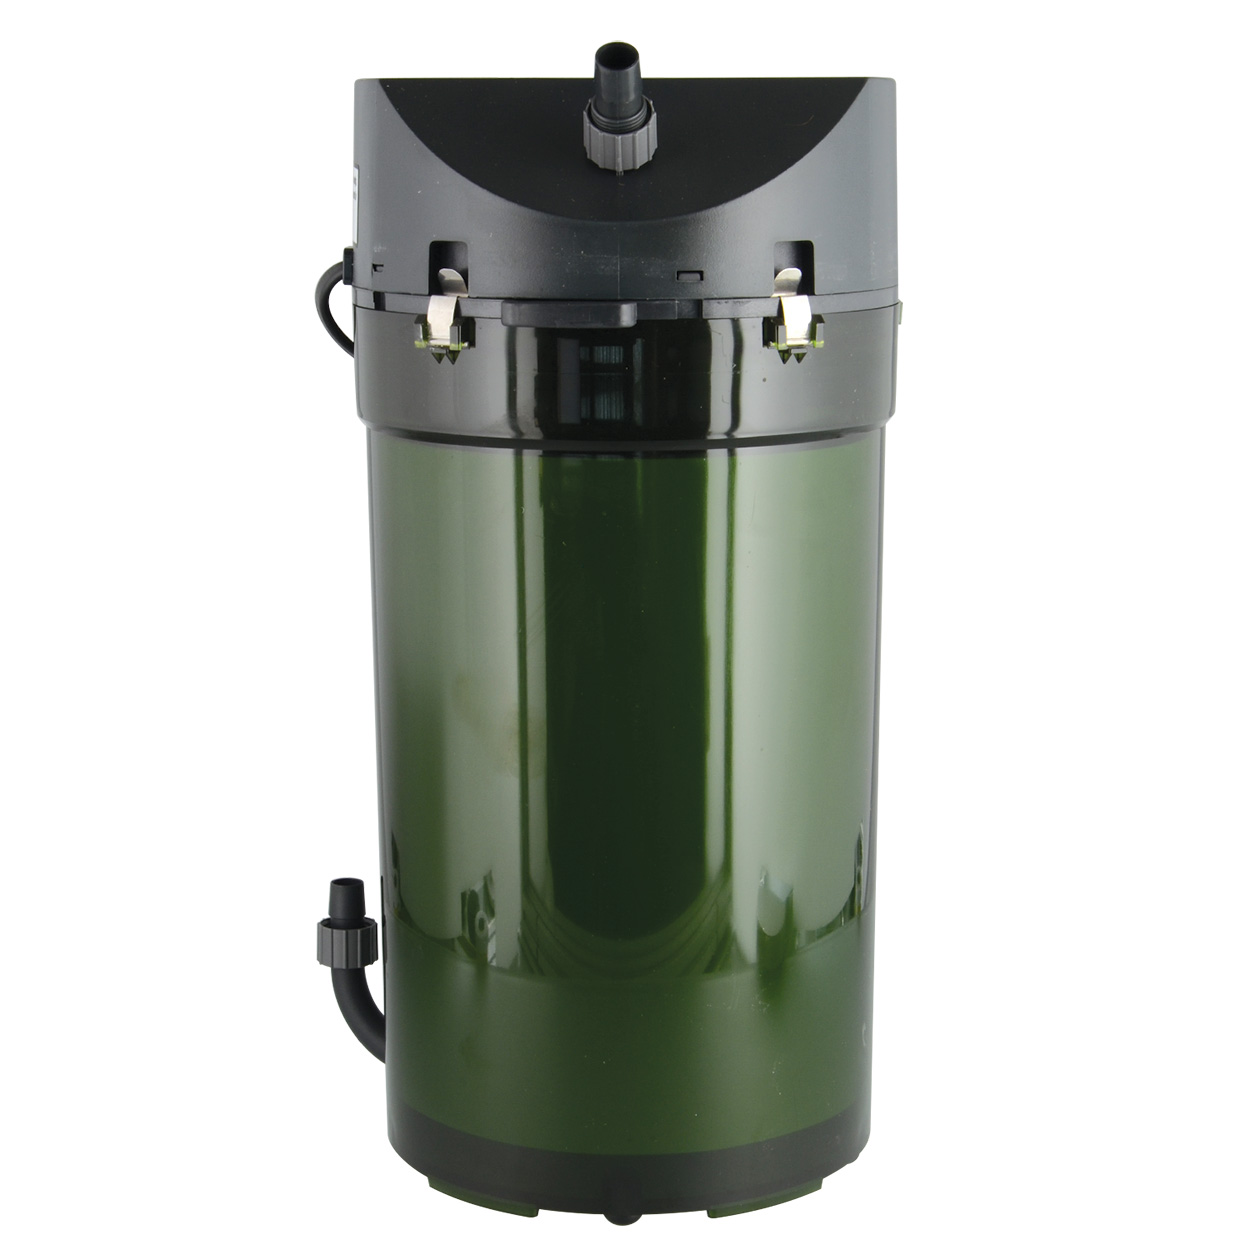 Eheim Classic Canister Filter with Media - 2215 Big Als